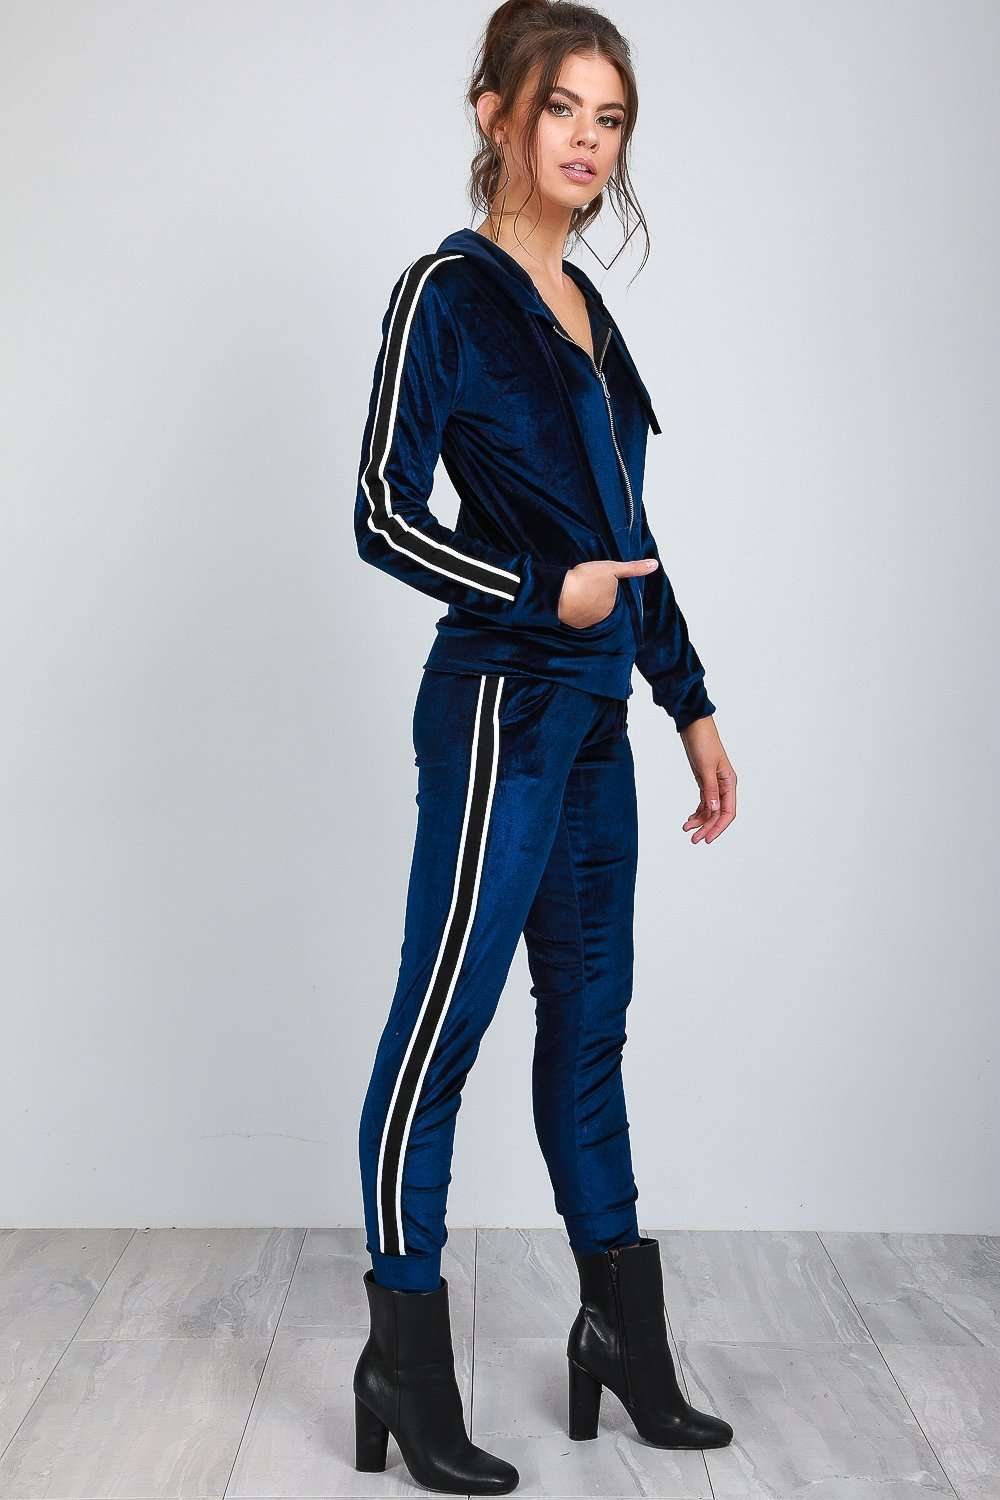 Hailee Striped Velour Lounge Wear Set - bejealous-com